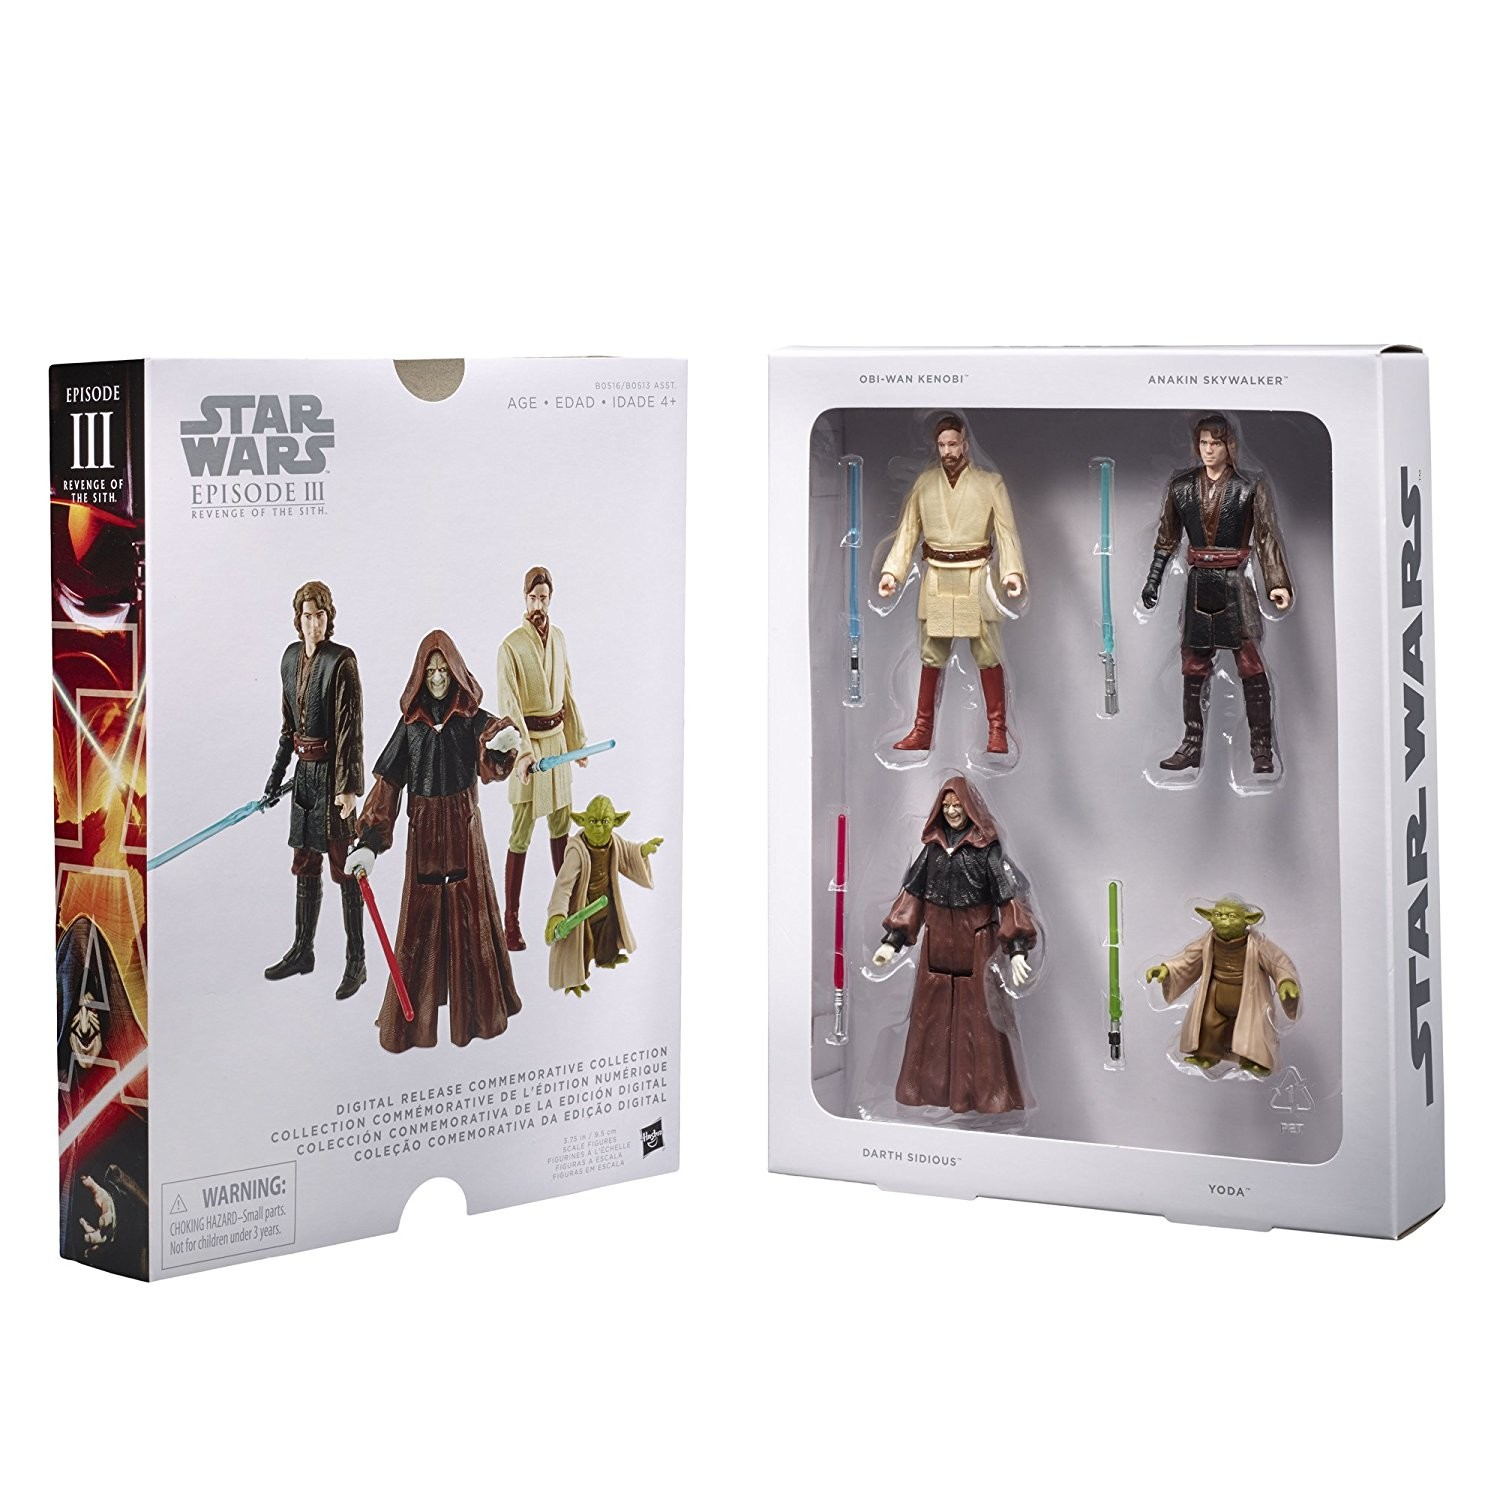 Star Wars Digital Release Commemorative Collection Episode Iii Revenge Of The Sith Star Wars Rebels Action Figure